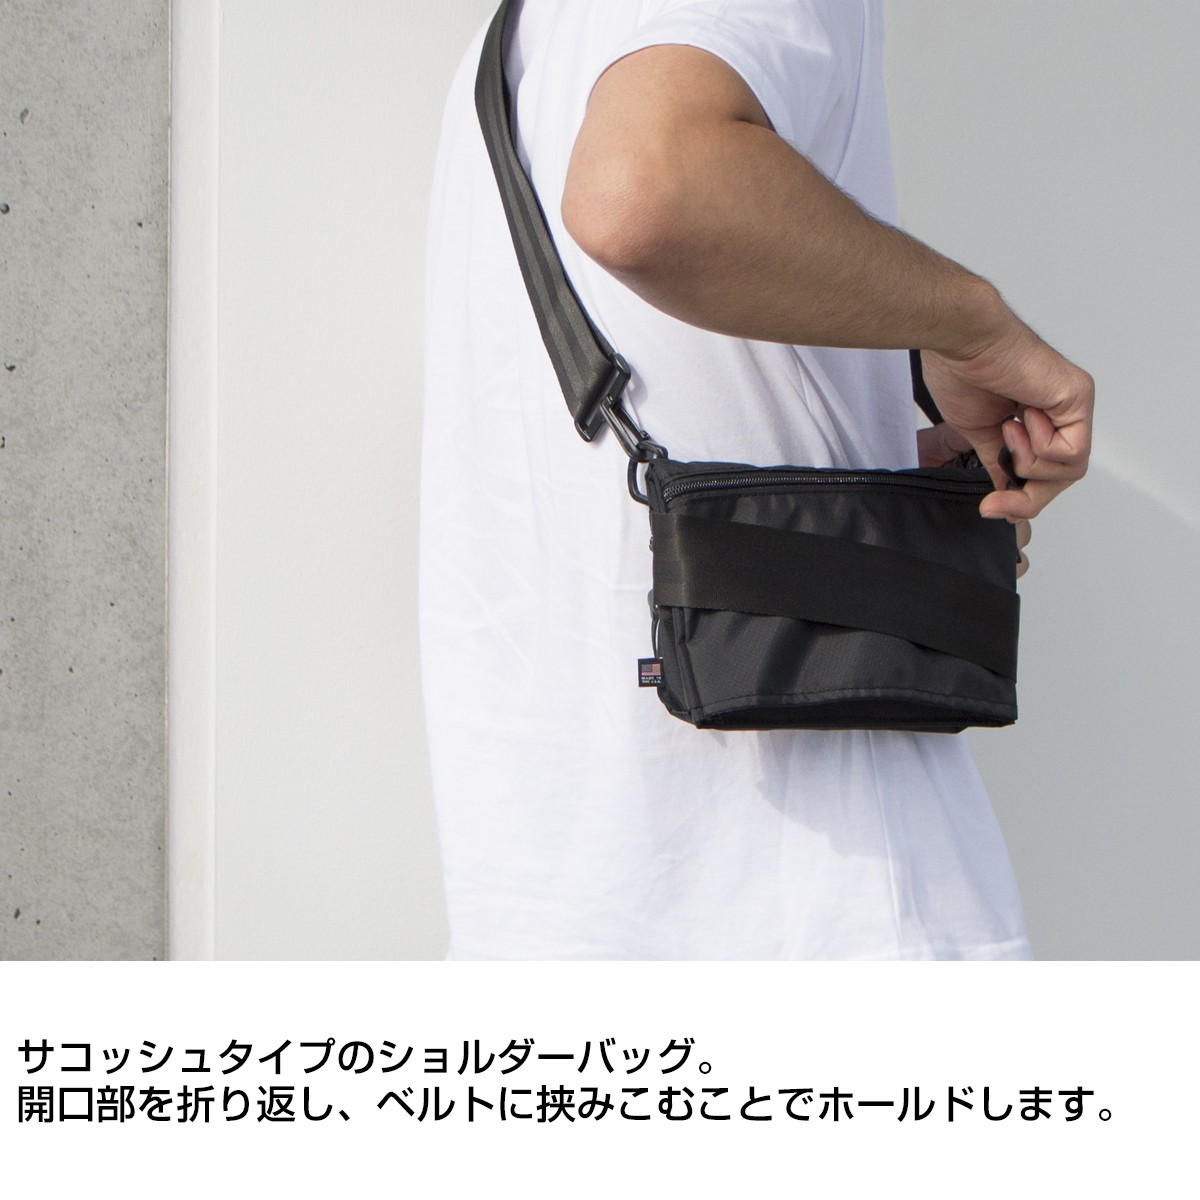 Langtry Folding Shoulder Bag